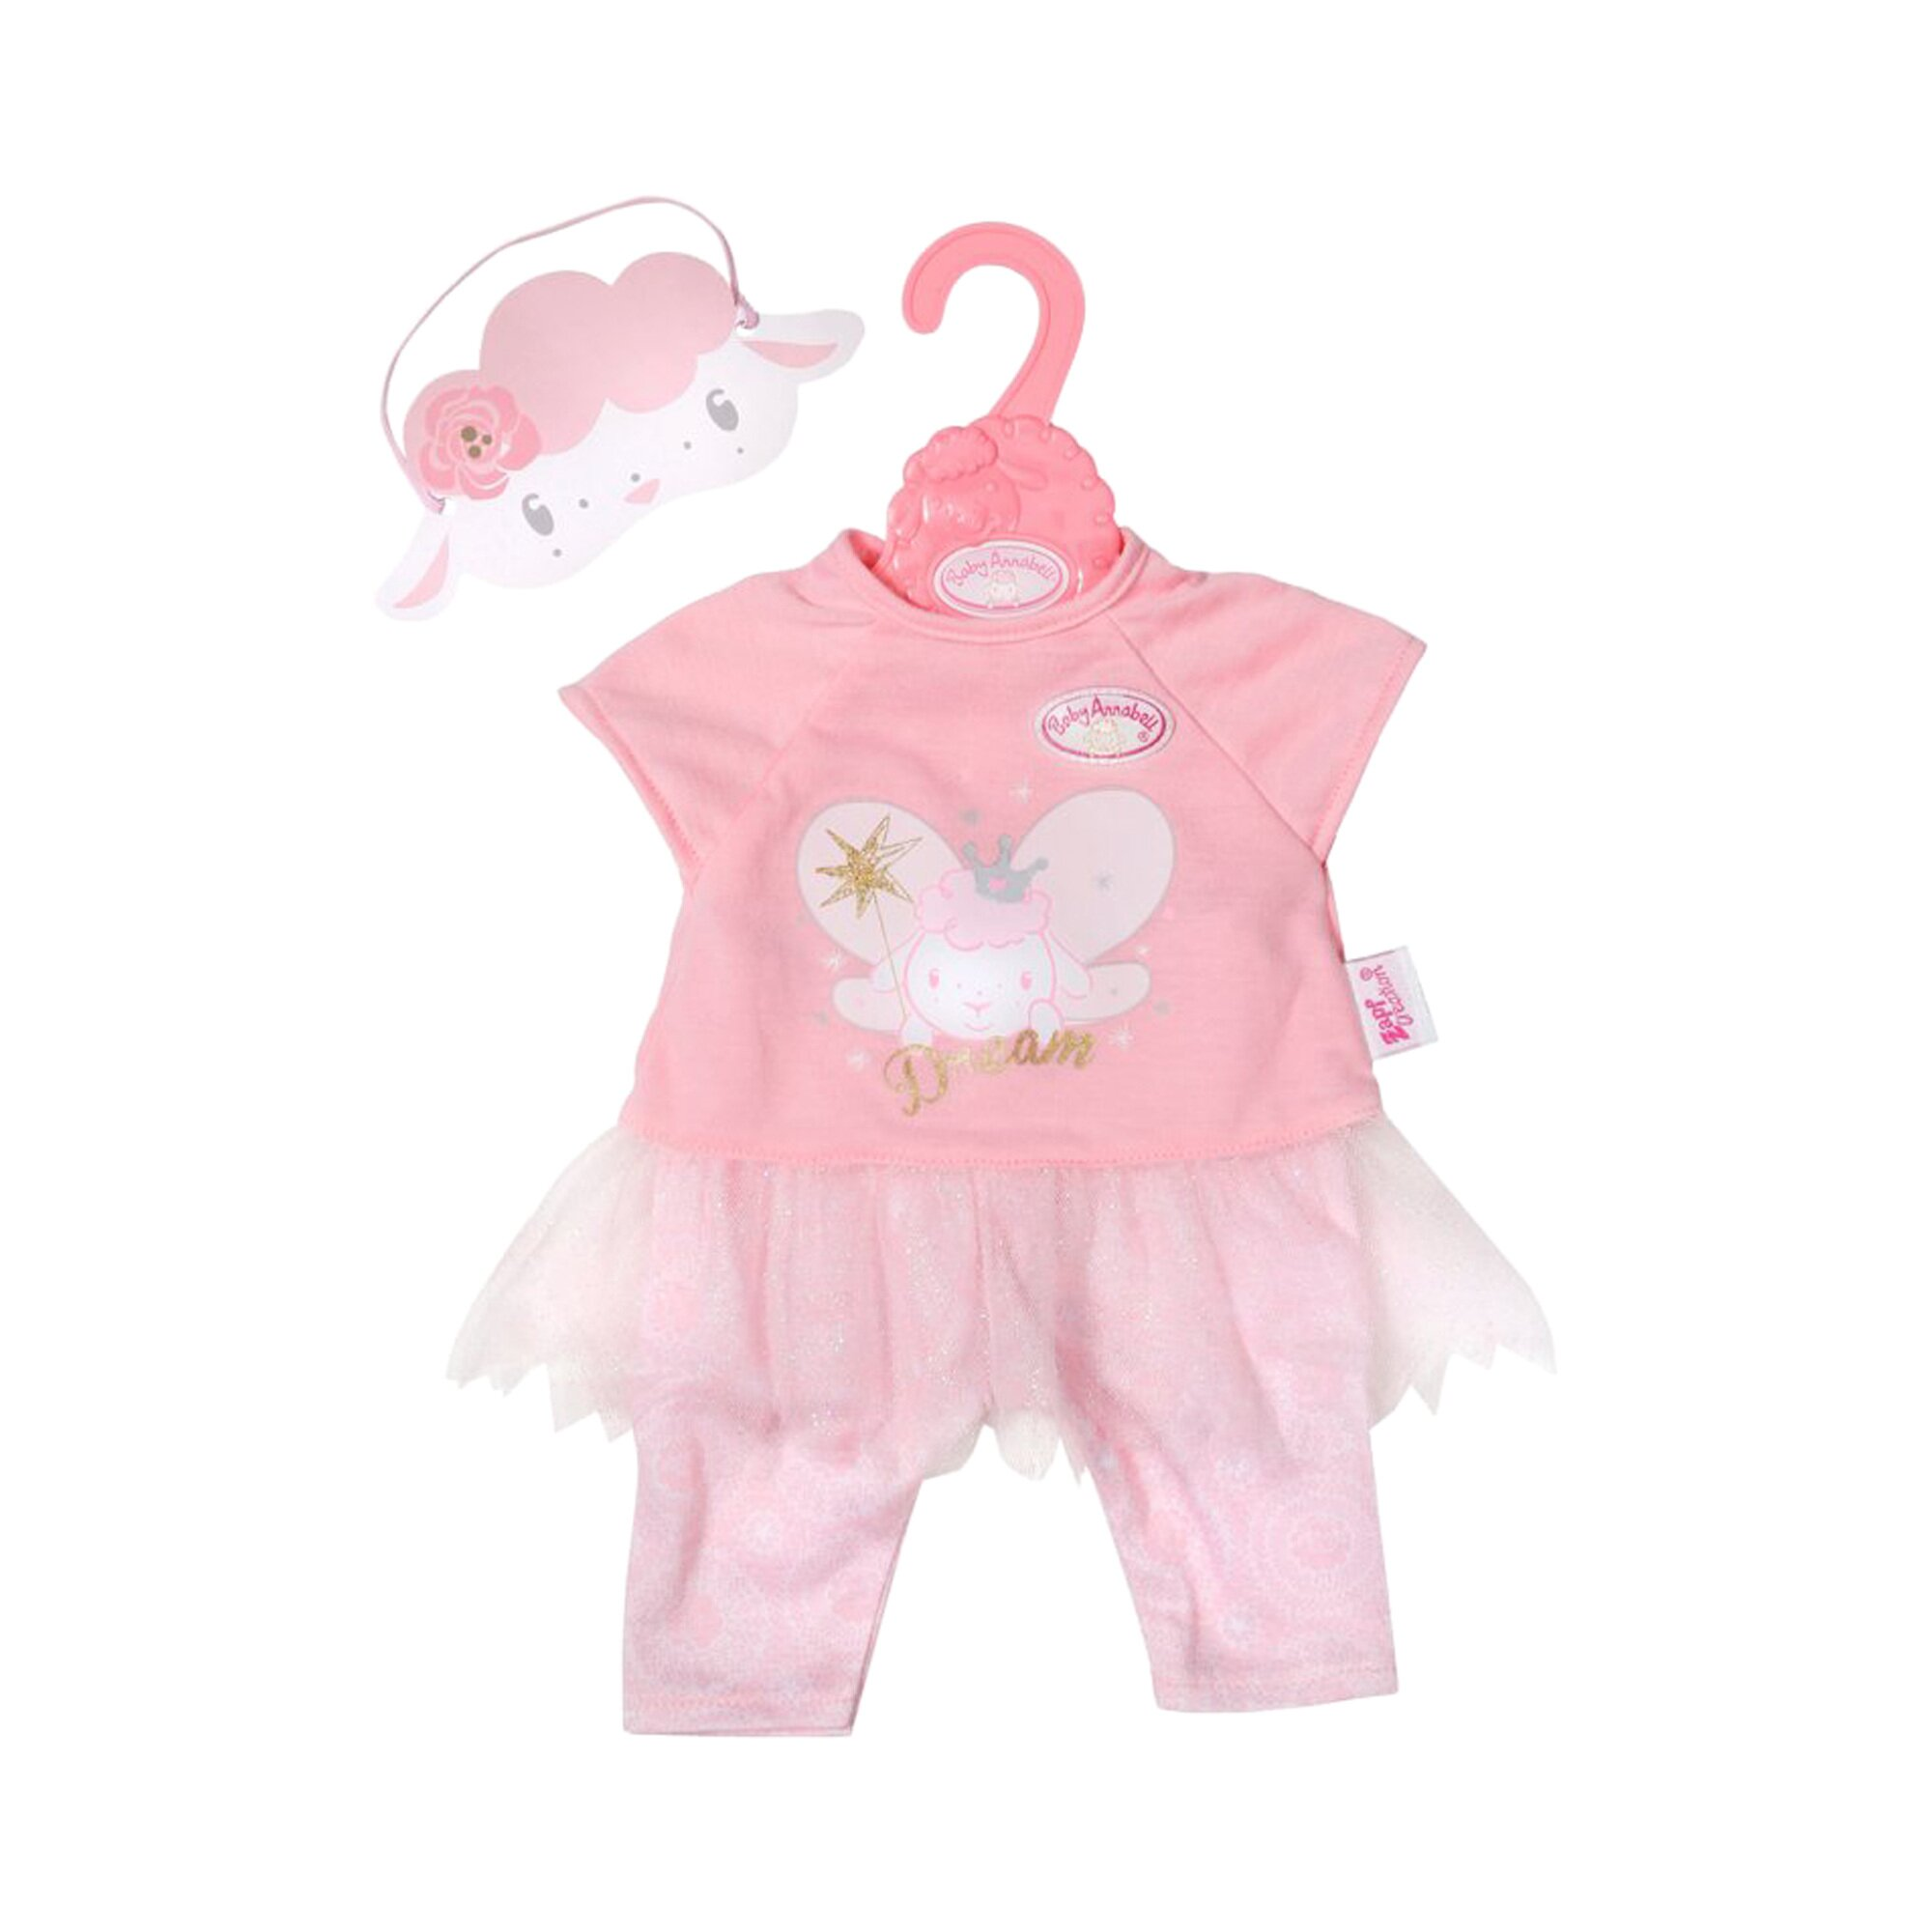 Baby Annabell Puppen Outfit Sweet Dreams Nachtfee 43cm